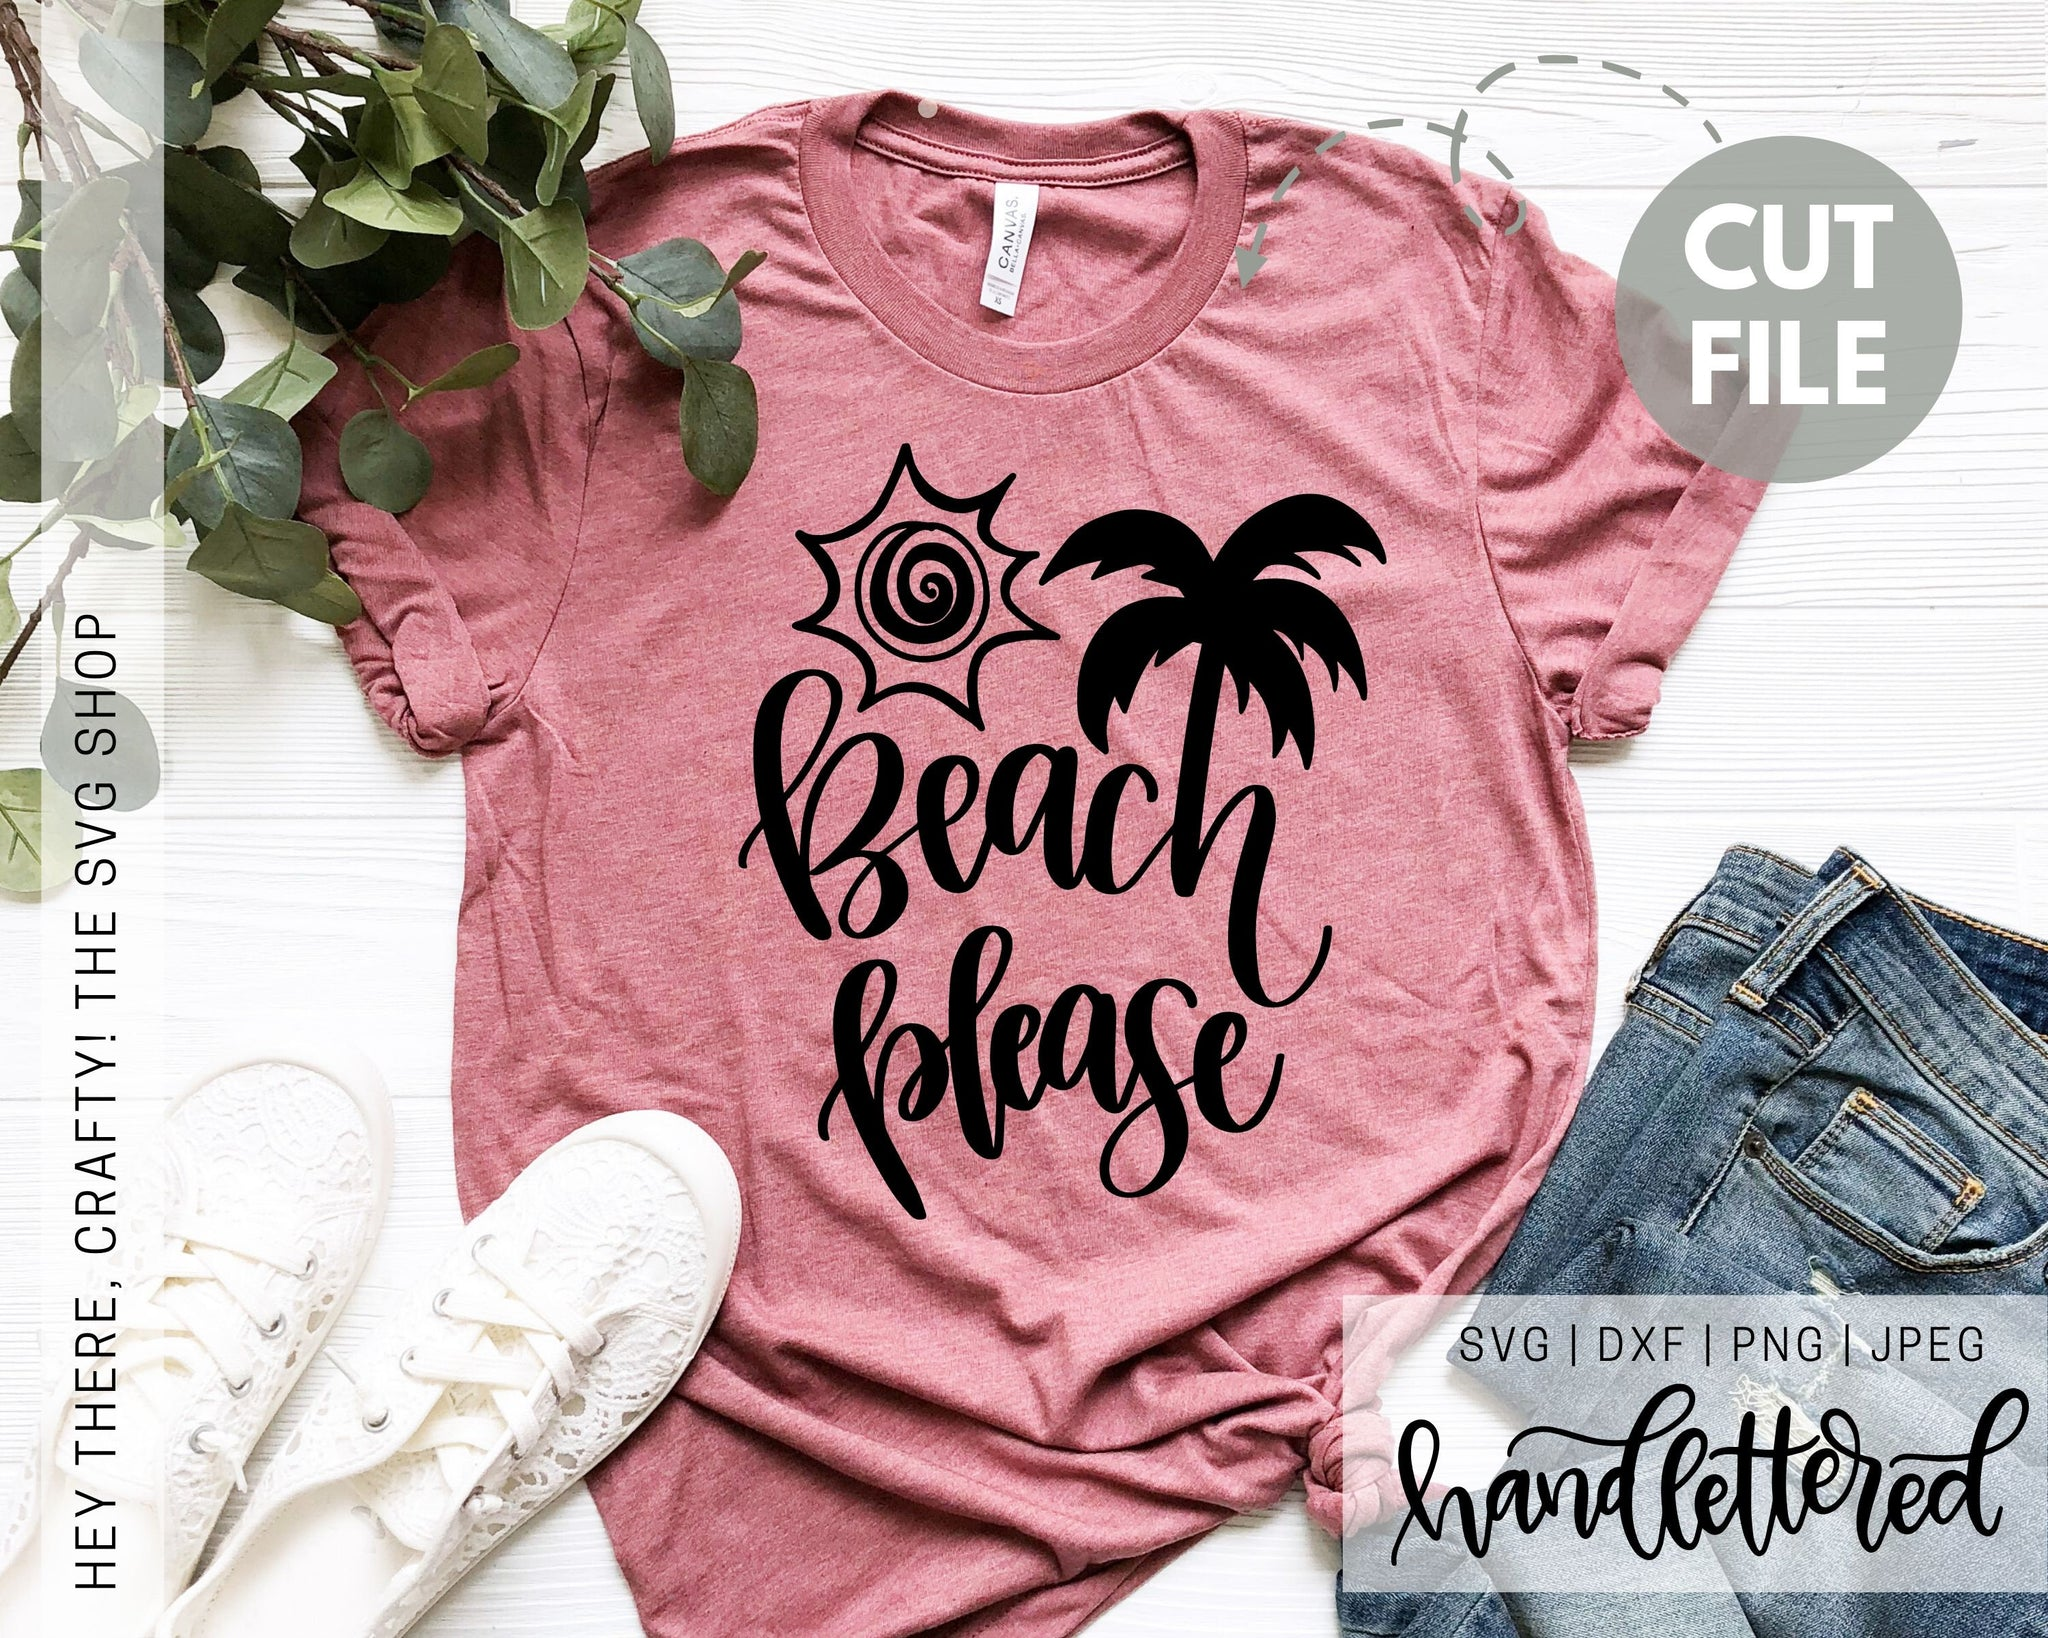 Beach Please | SVG, PNG, DXF, JPEG